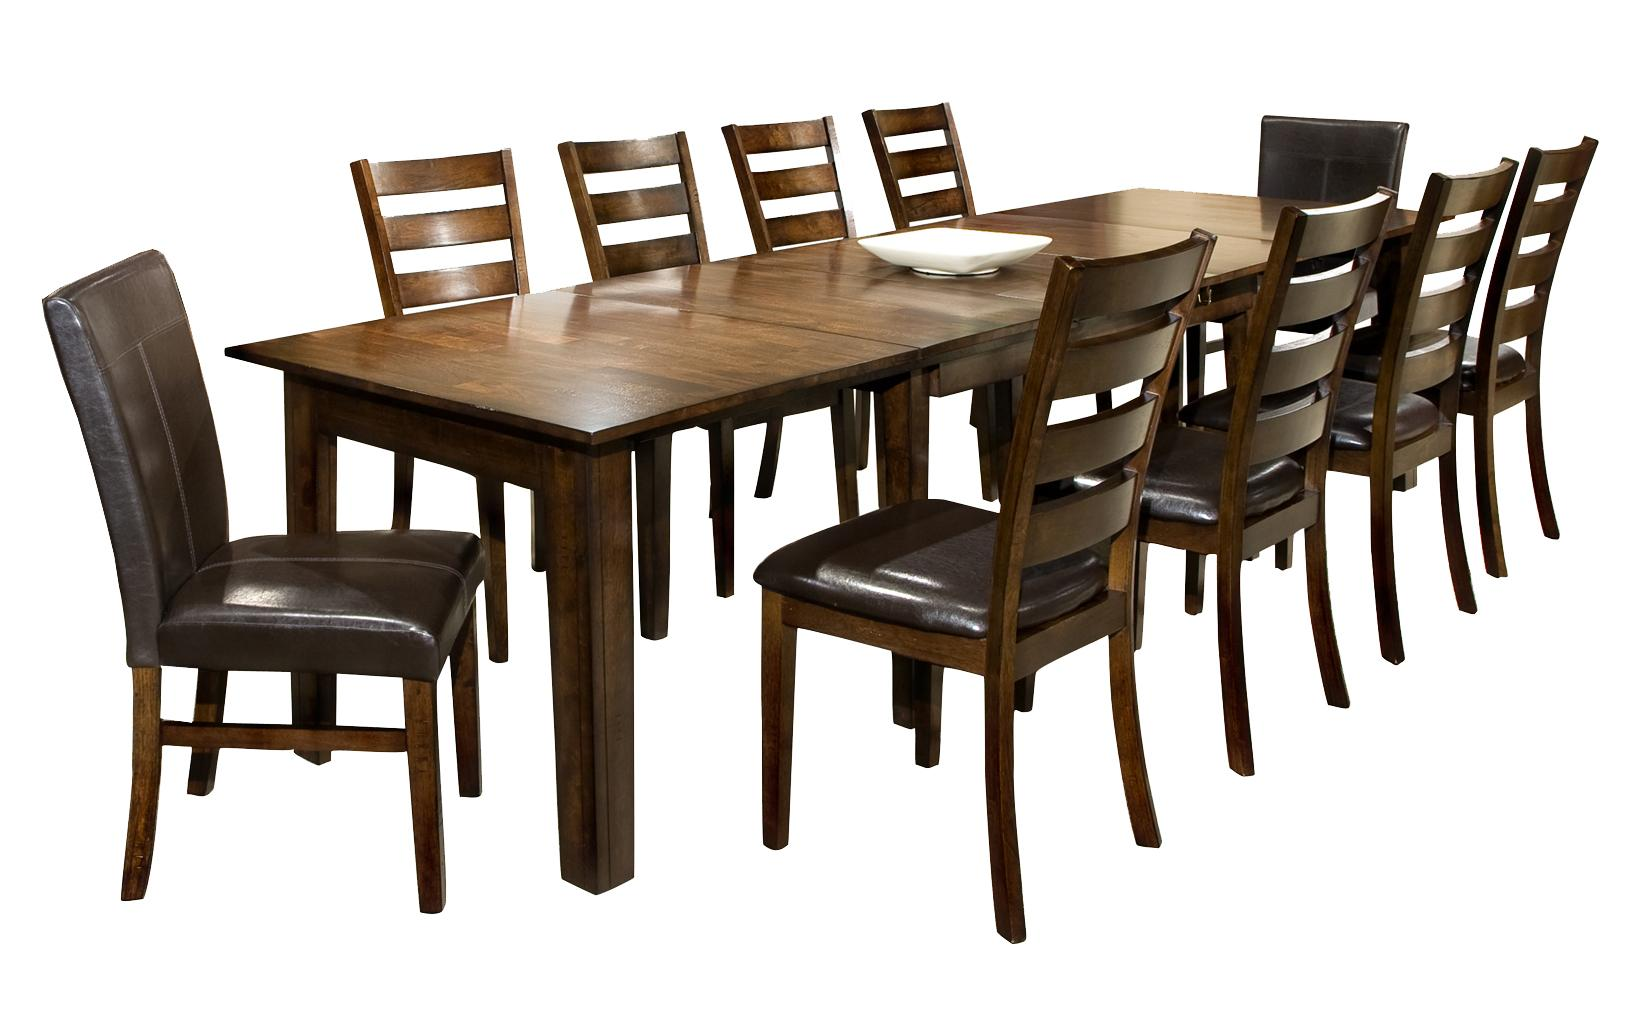 Intercon kona 11 piece dining set with table and chairs for Table 6 kitchen and bar canton ohio